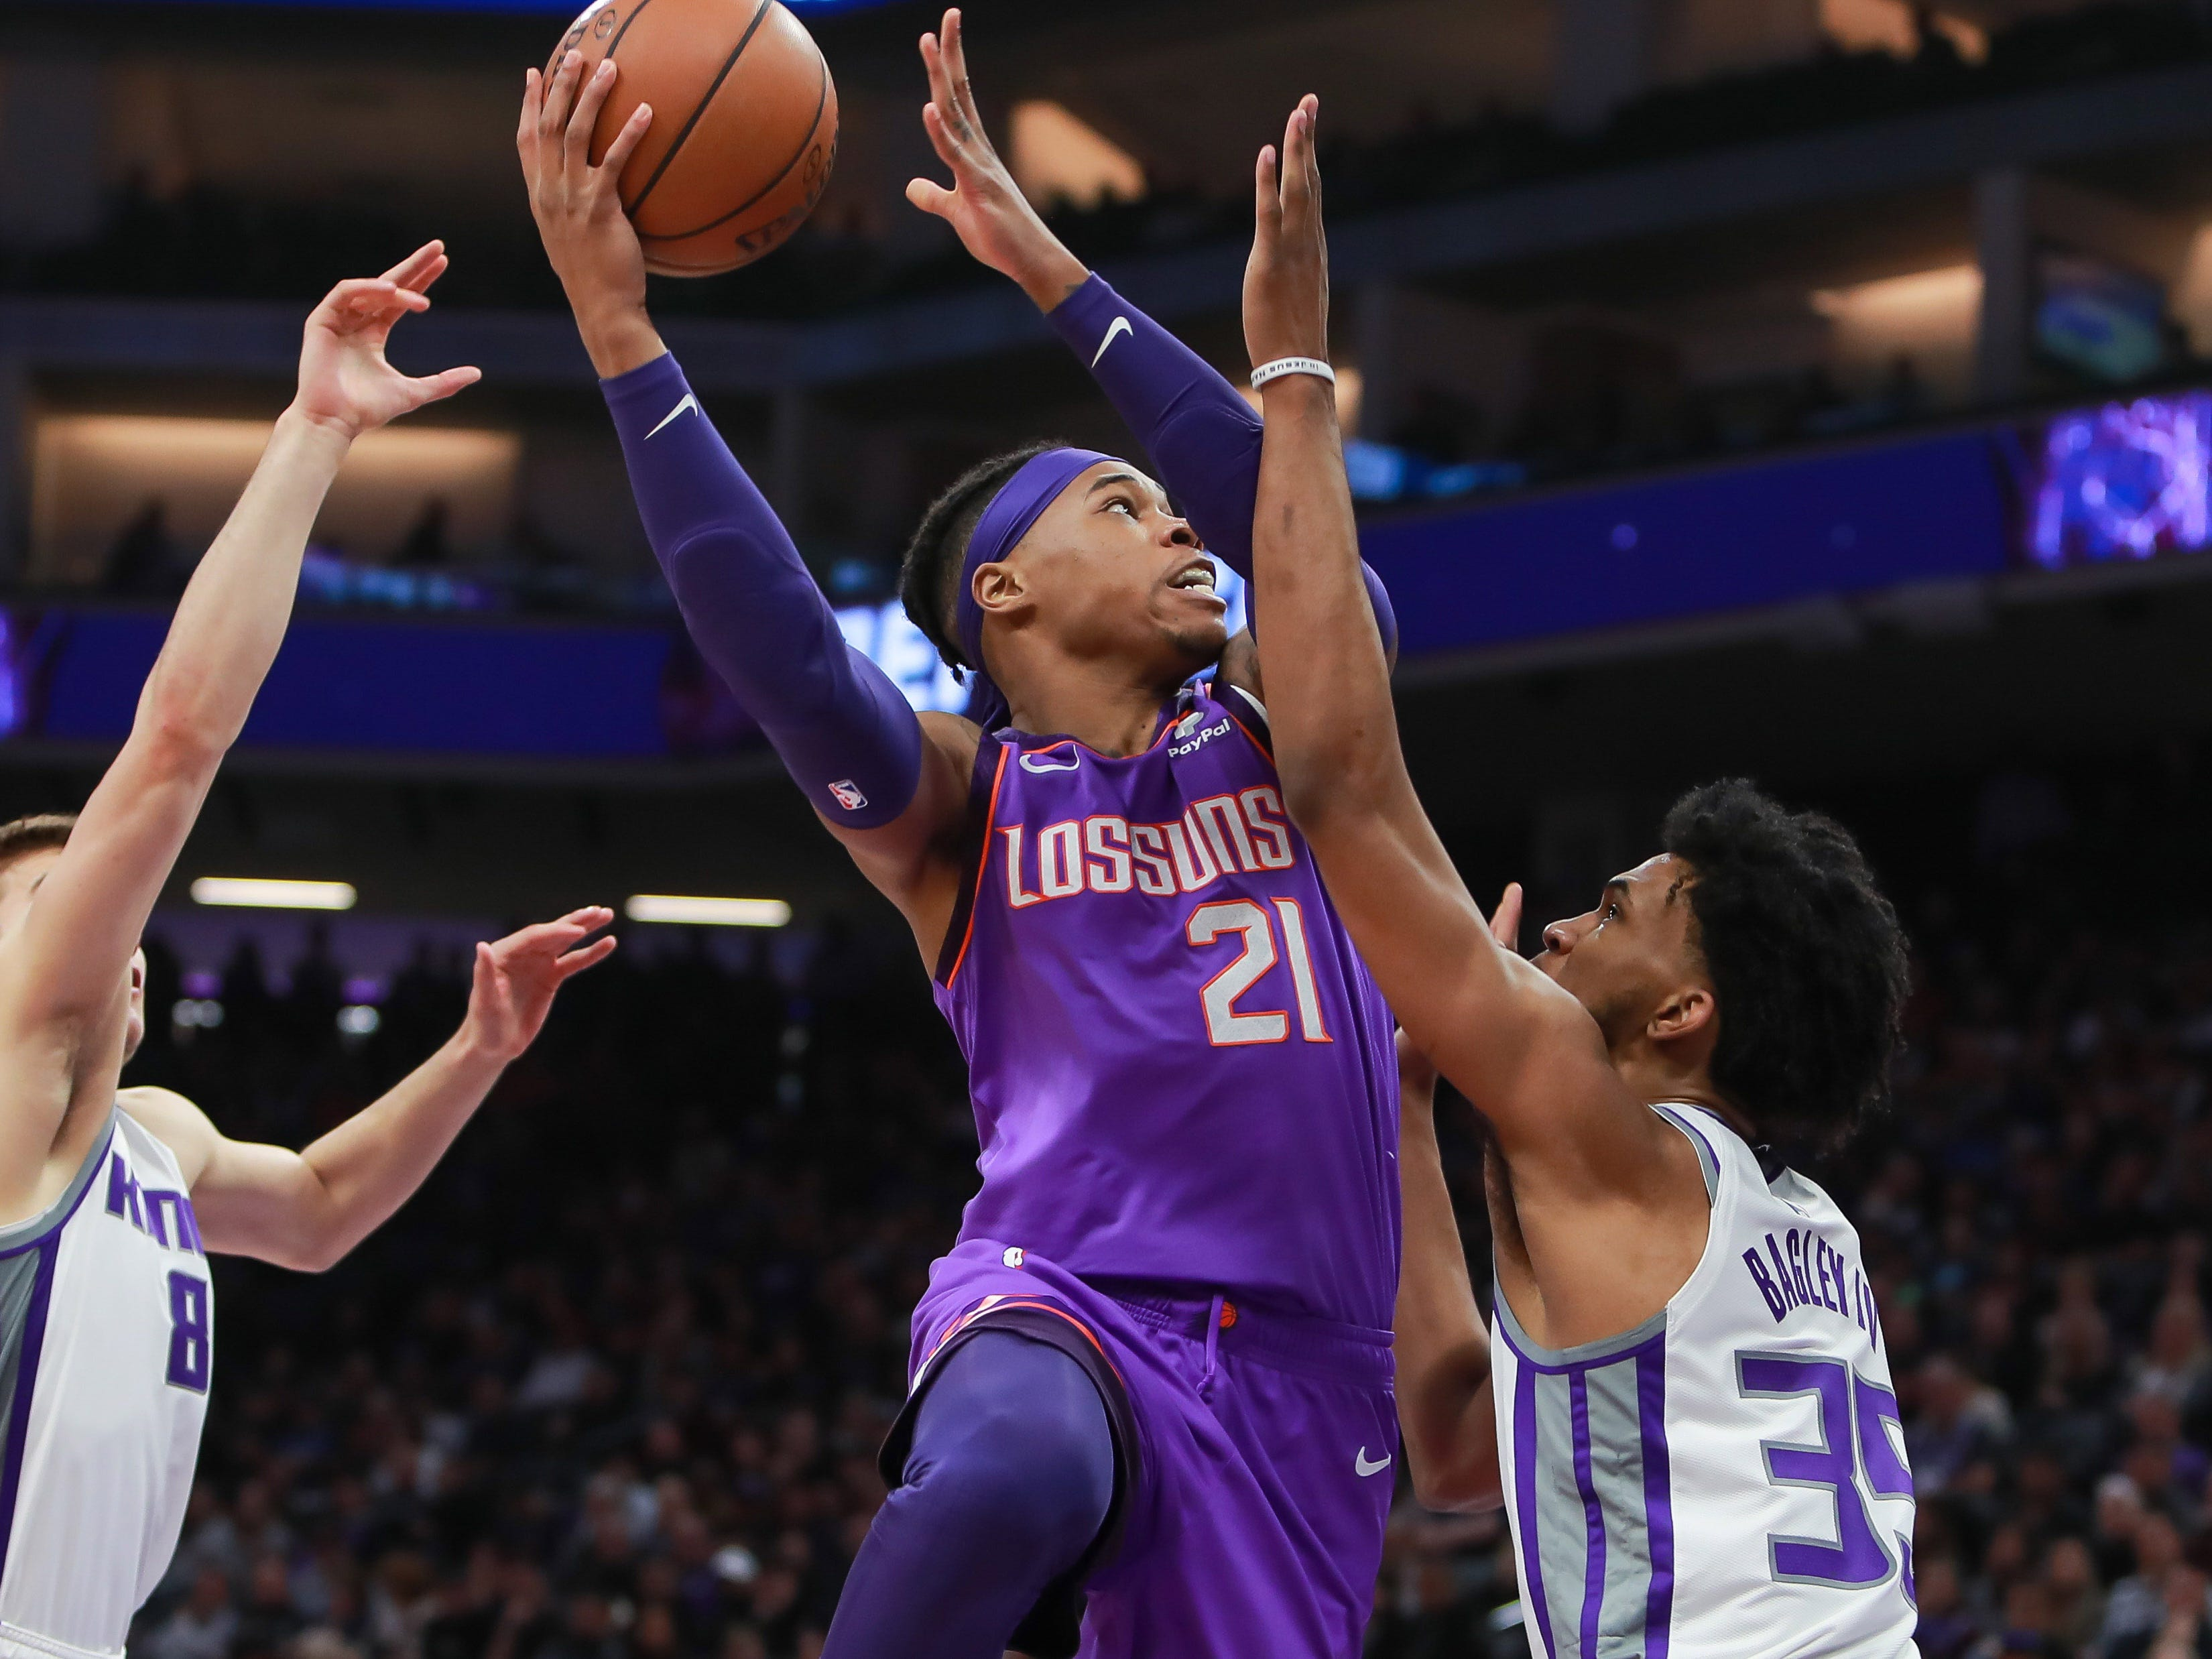 Mar 23, 2019; Sacramento, CA, USA; Phoenix Suns forward Richaun Holmes (21) shoot the ball against Sacramento Kings forward Marvin Bagley III (35) during the first quarter at Golden 1 Center.